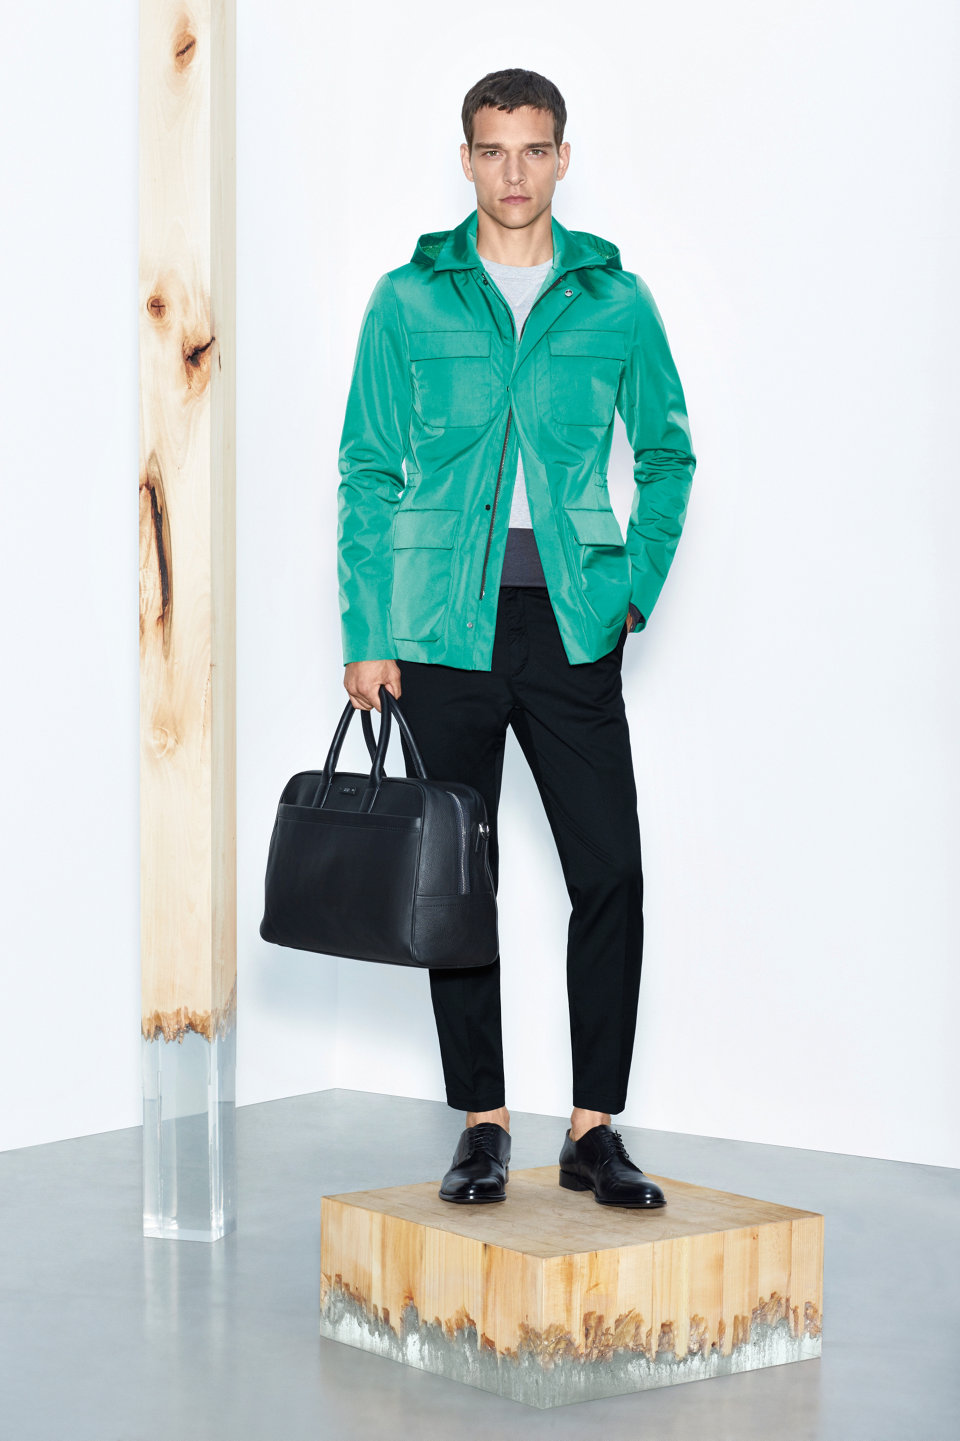 Green outerwear, black trousers and black leather bag by BOSS